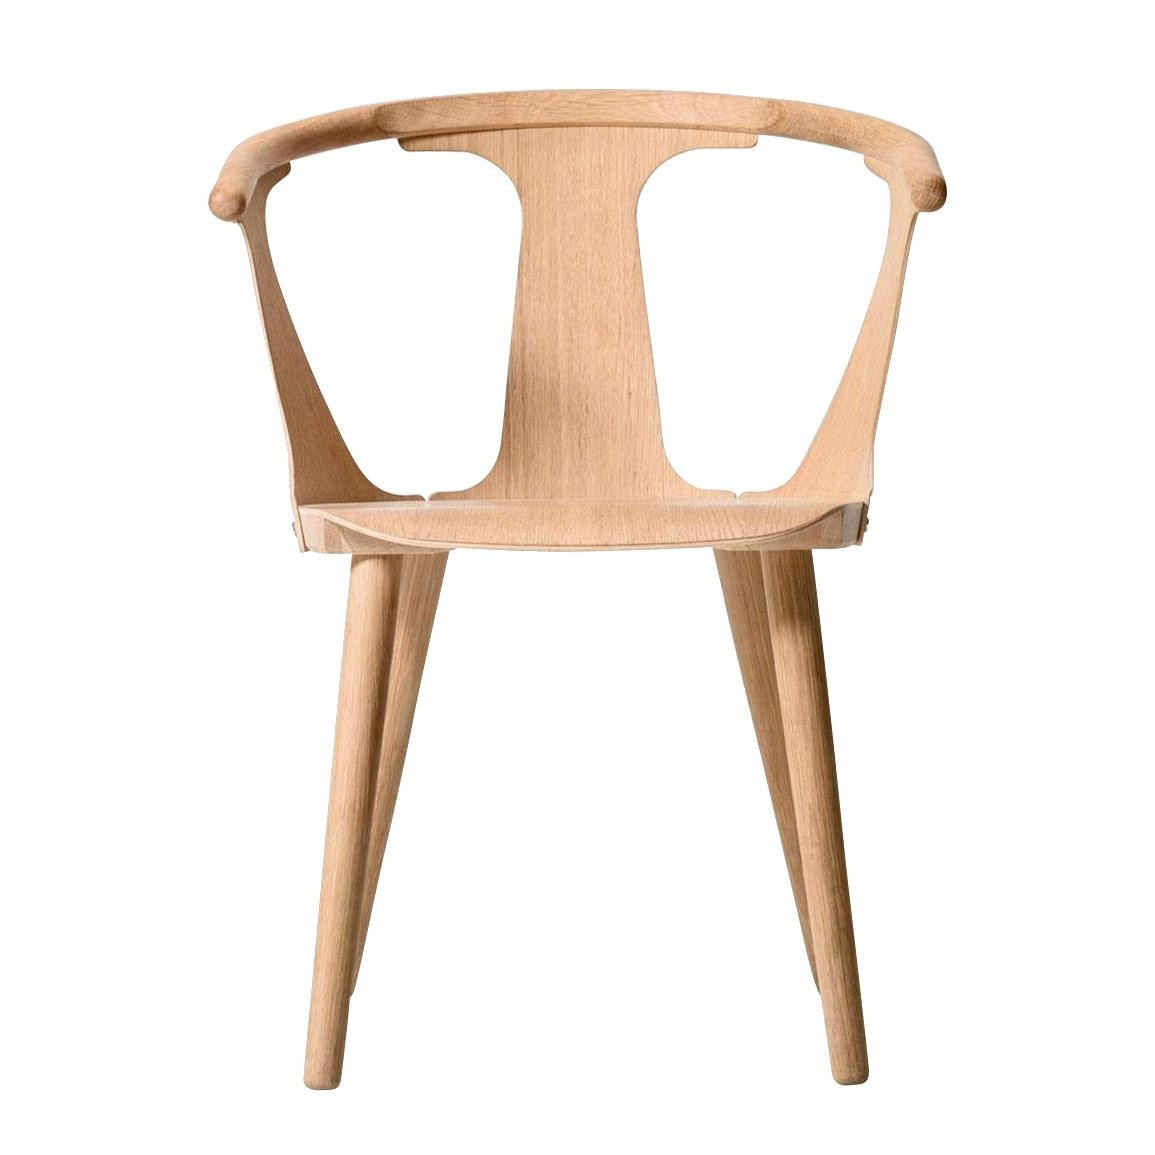 Chaise Chair In In Chaise Chair SK1 SK1 Between In Between ym0OnvNw8